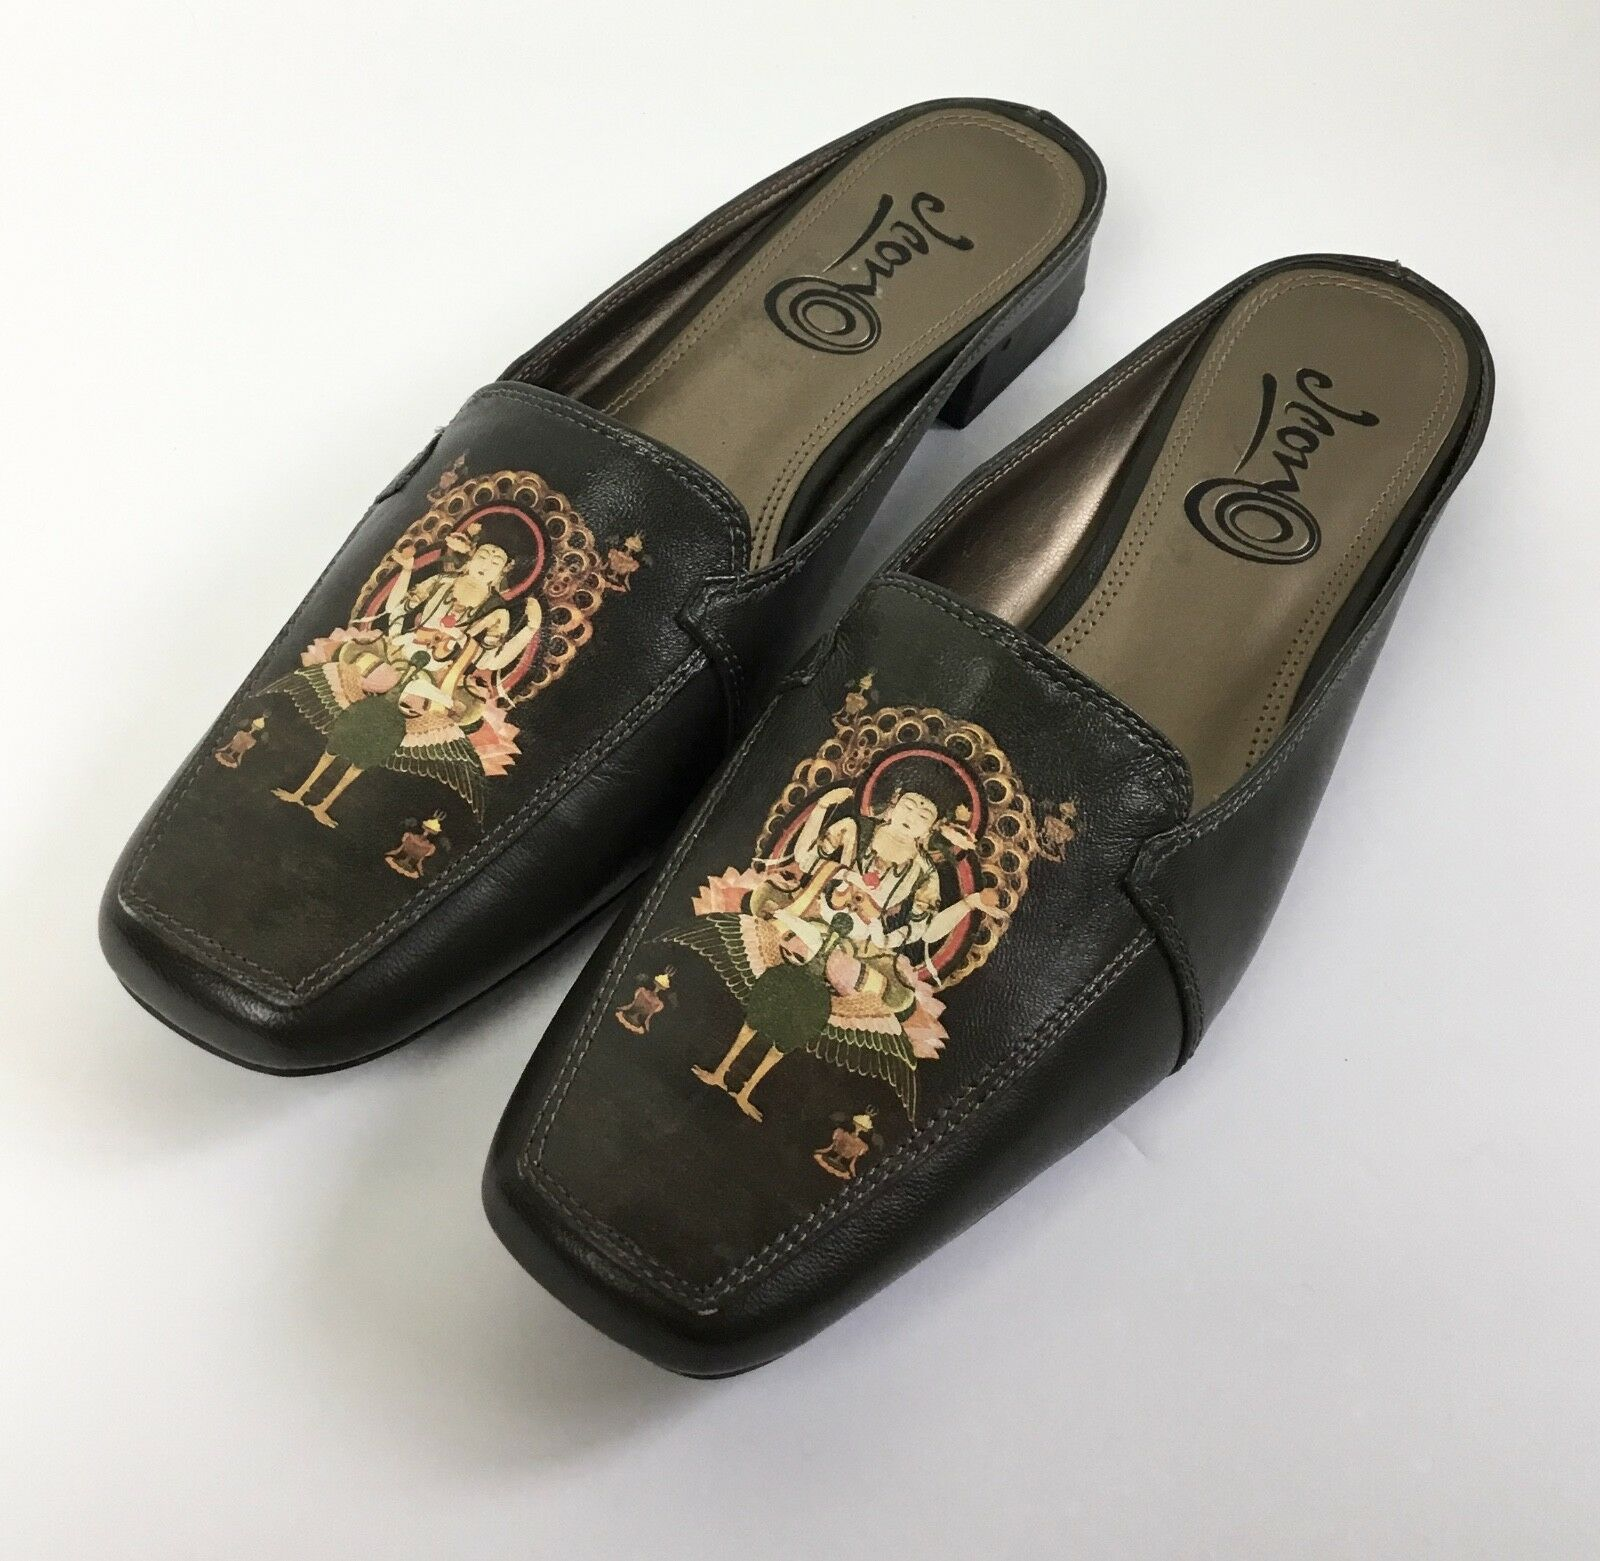 Icon Leder Mules Slides Schuhes Art To Wear